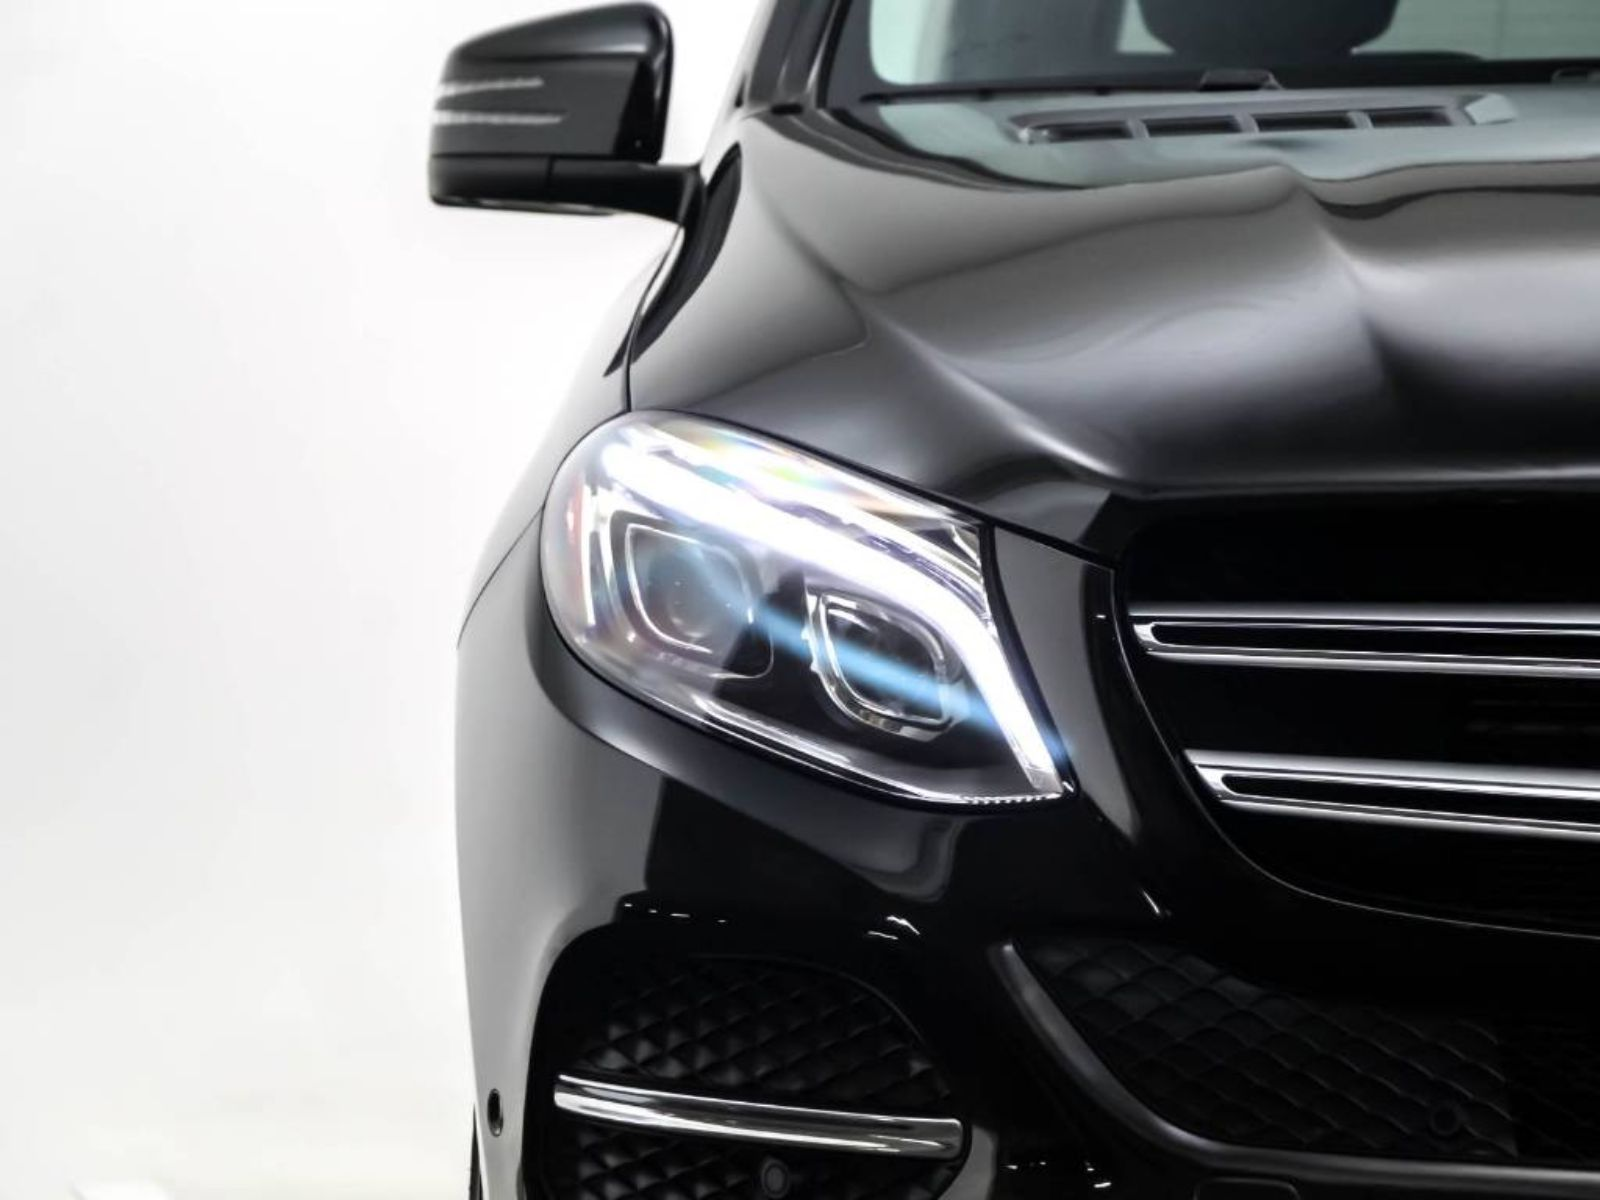 Used Cars for Sale in Newport Beach, CA Mercedes benz